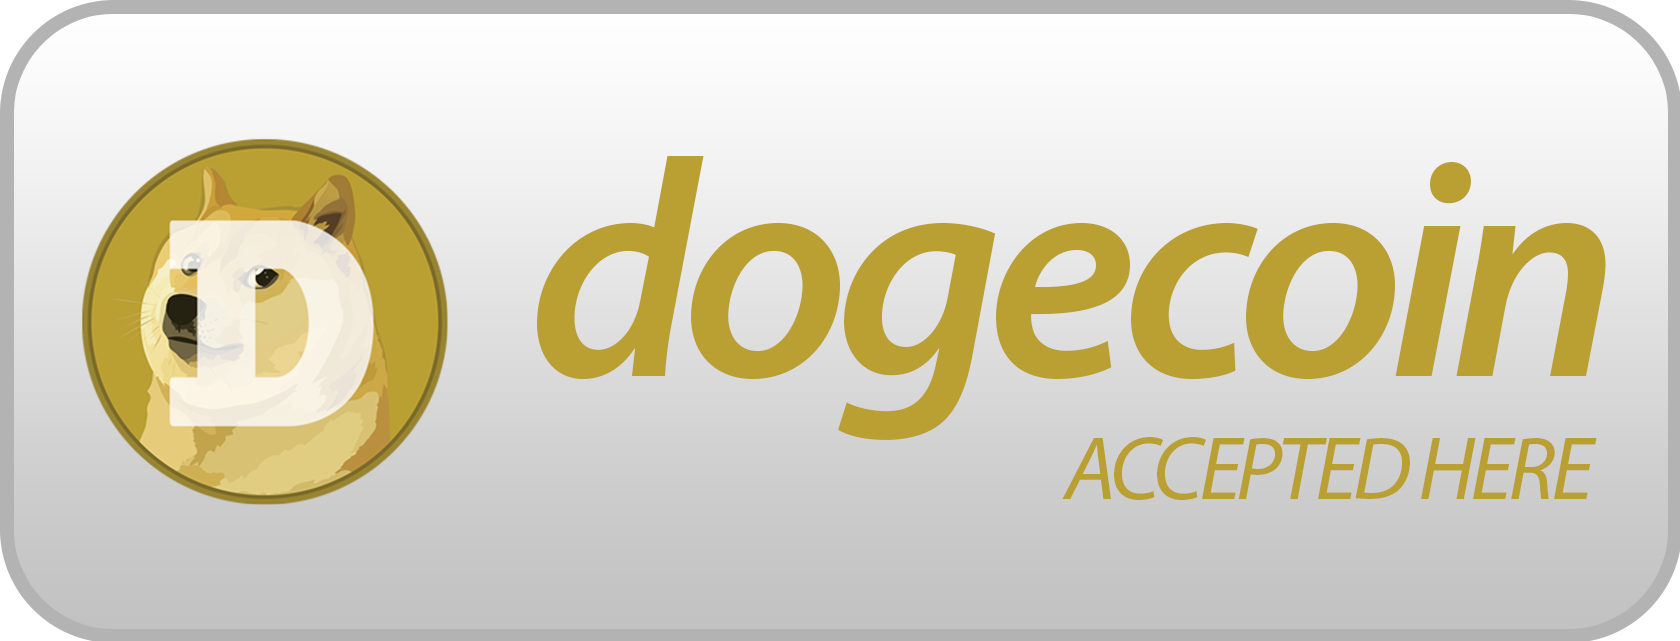 Dogecoin Accepted Here For Lacey The Pap! | Feelings ...